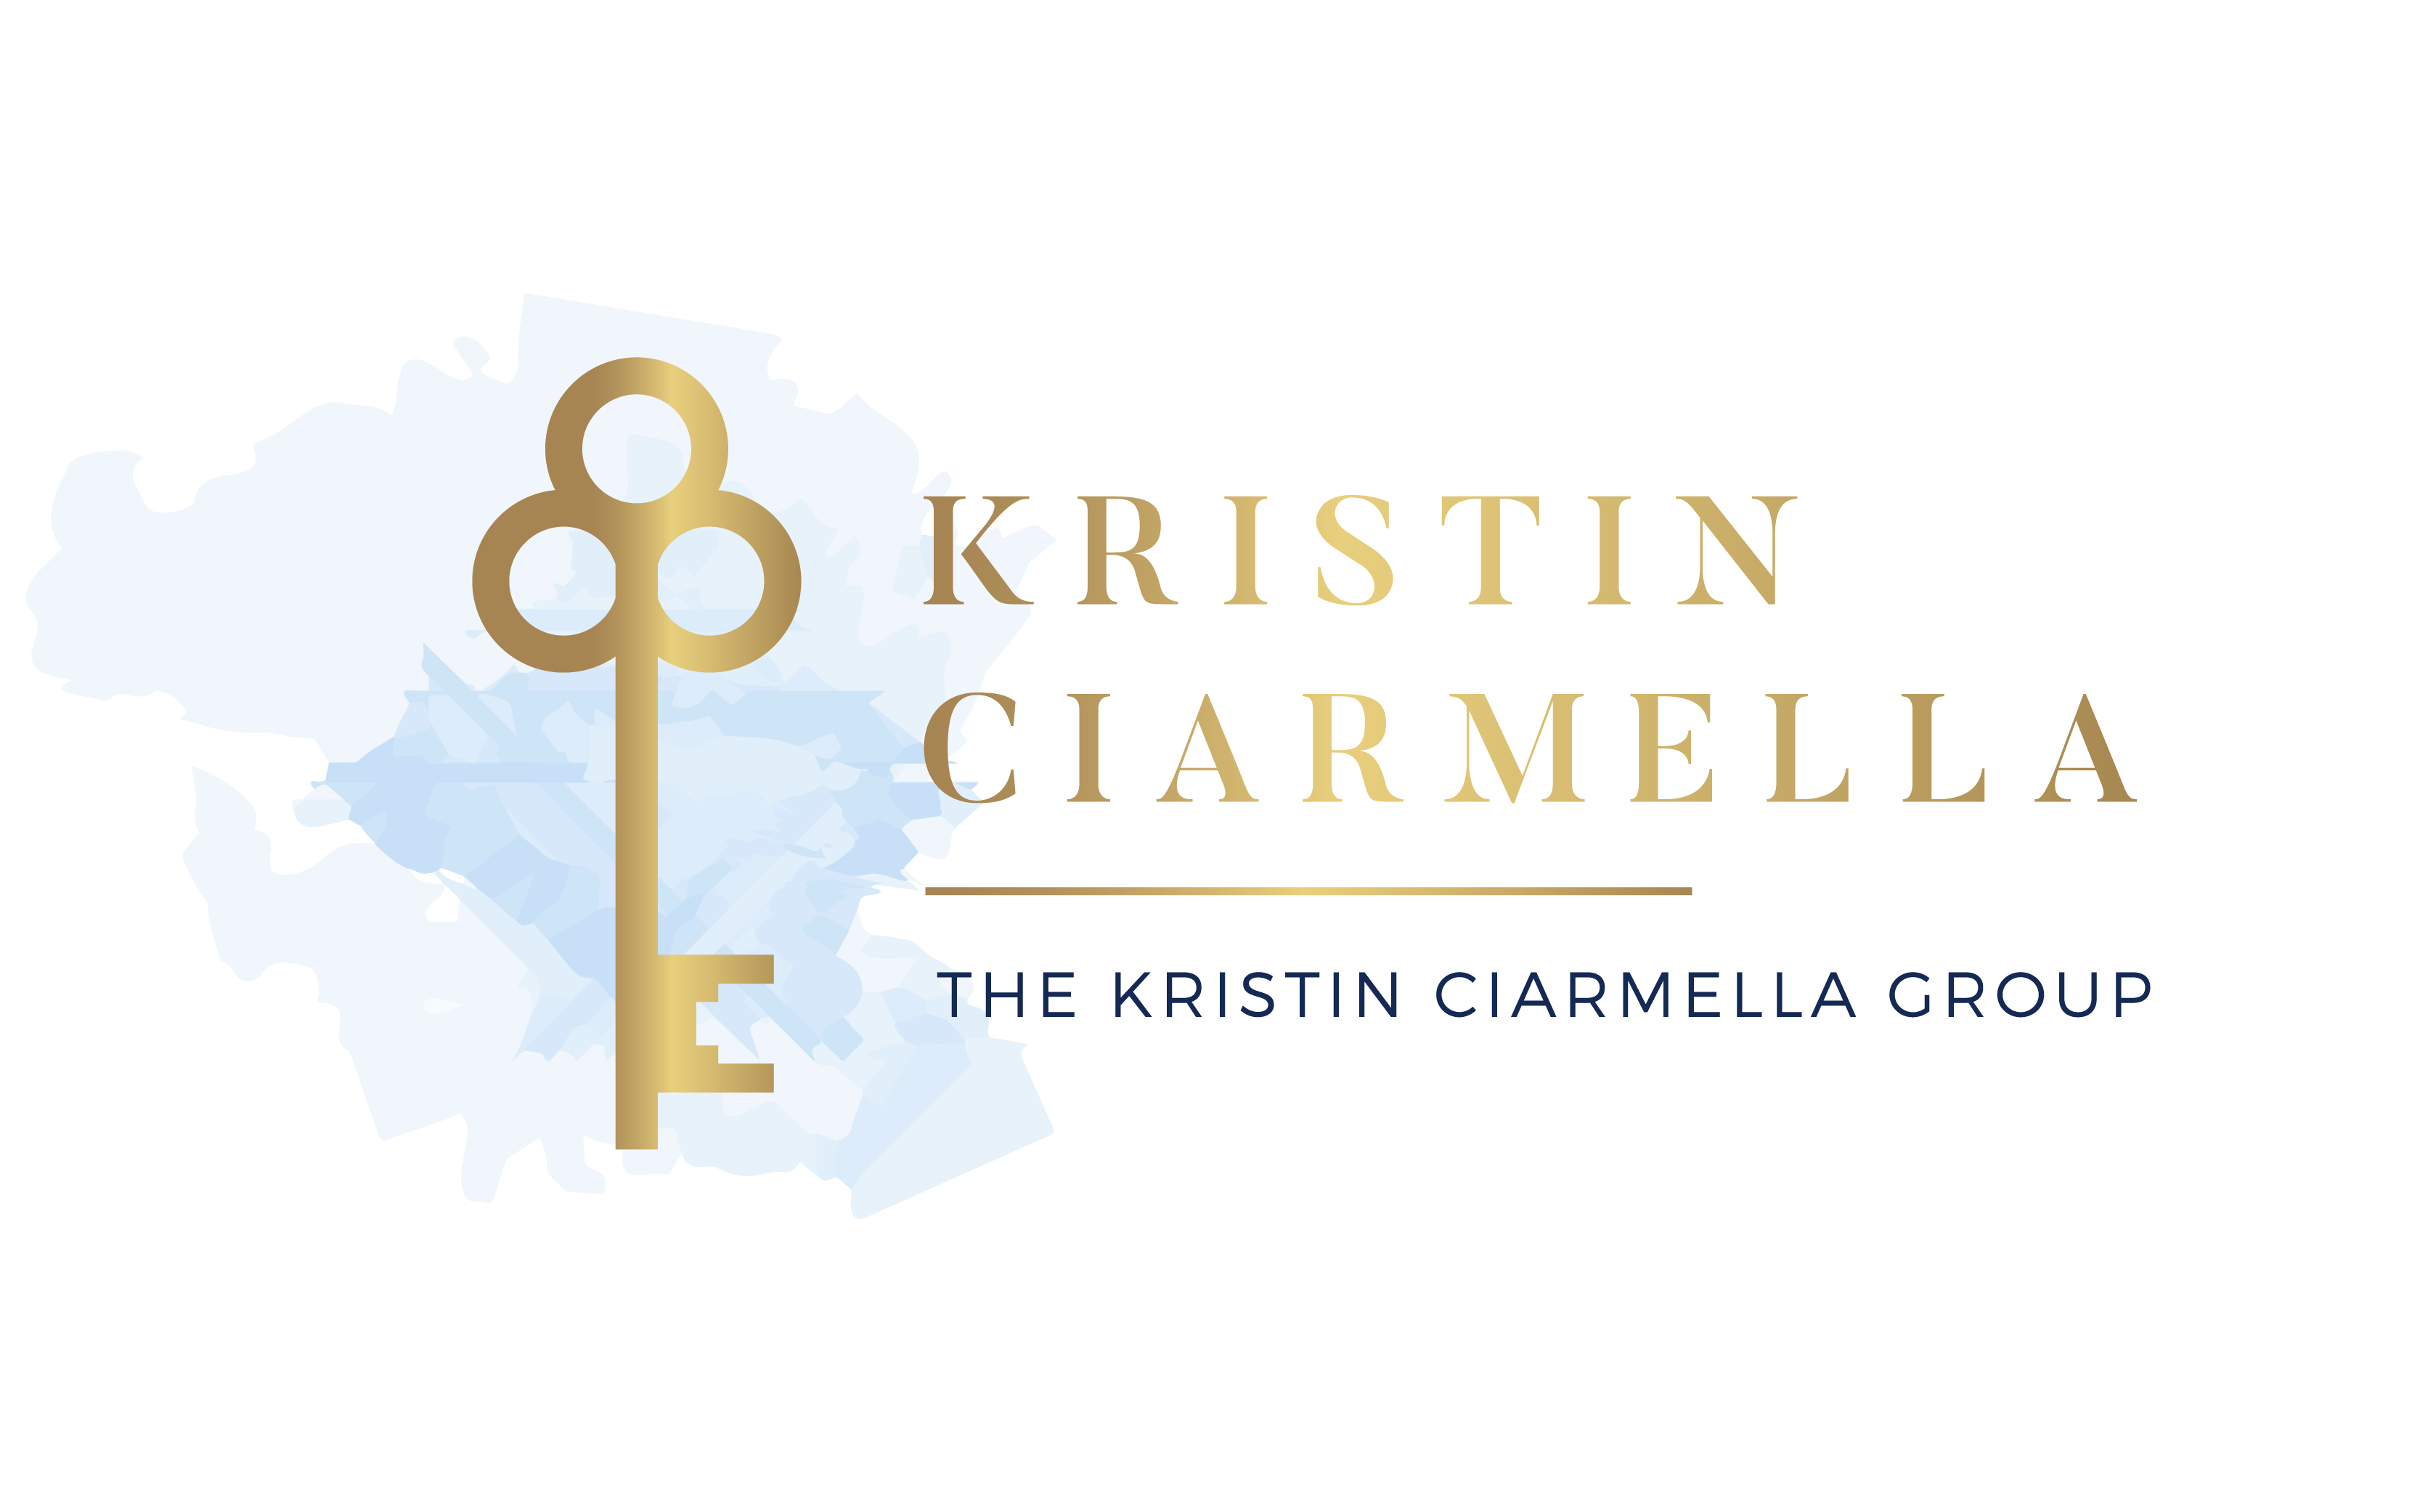 The Kristin Ciarmella Group